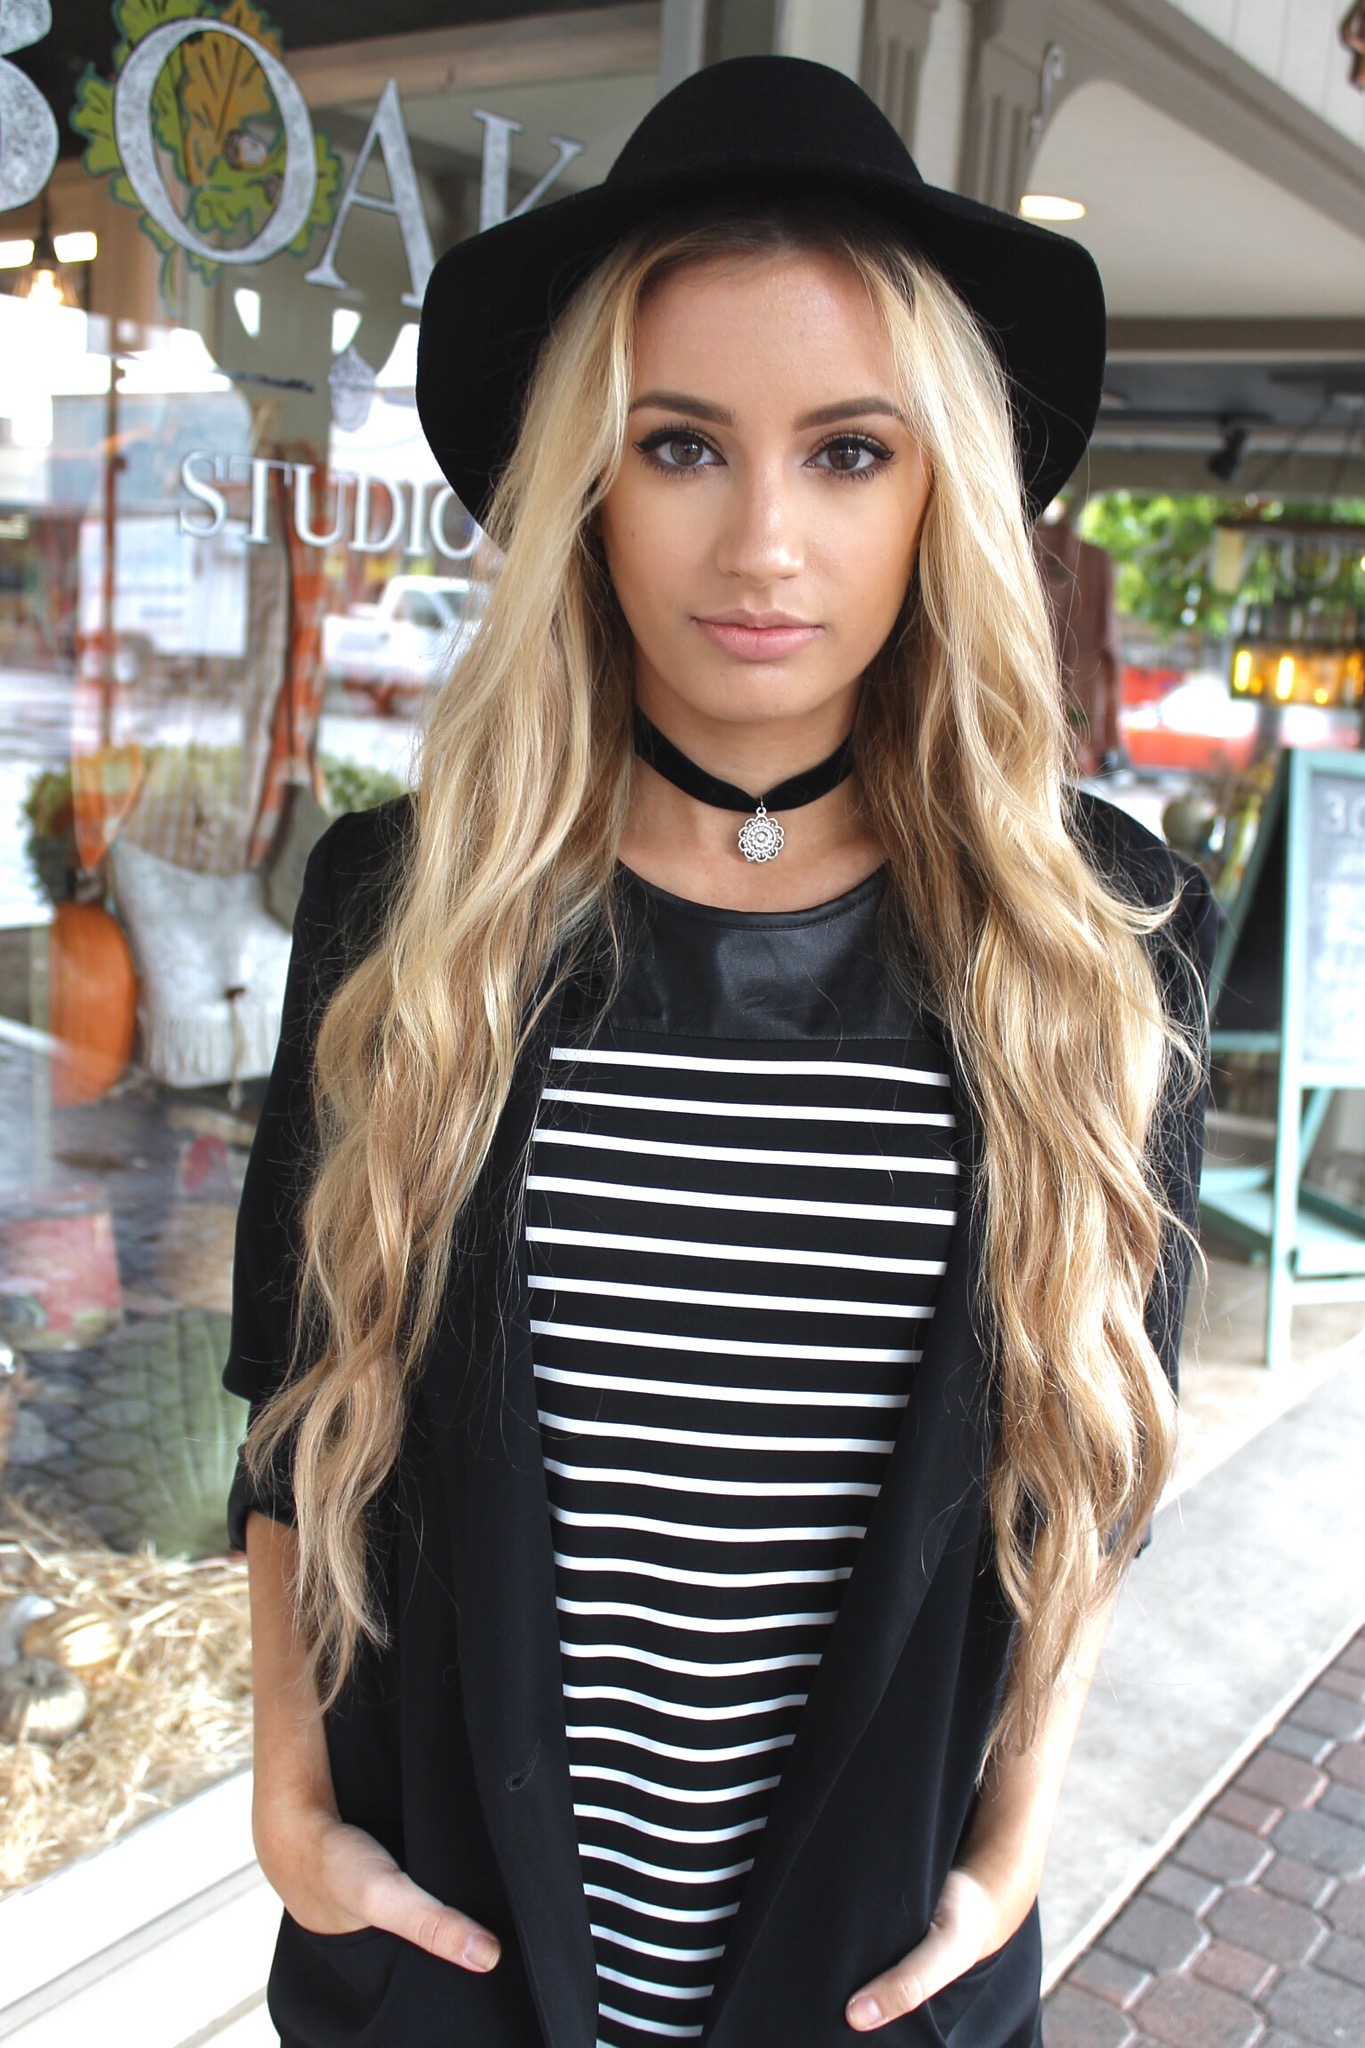 Fall stripes style by kaitlynn blazer similar here hat lulus necklace we who seek purse haute demand use code lovekaitlynn for 15 off hair bellami 24 dirty blonde extensions pmusecretfo Choice Image